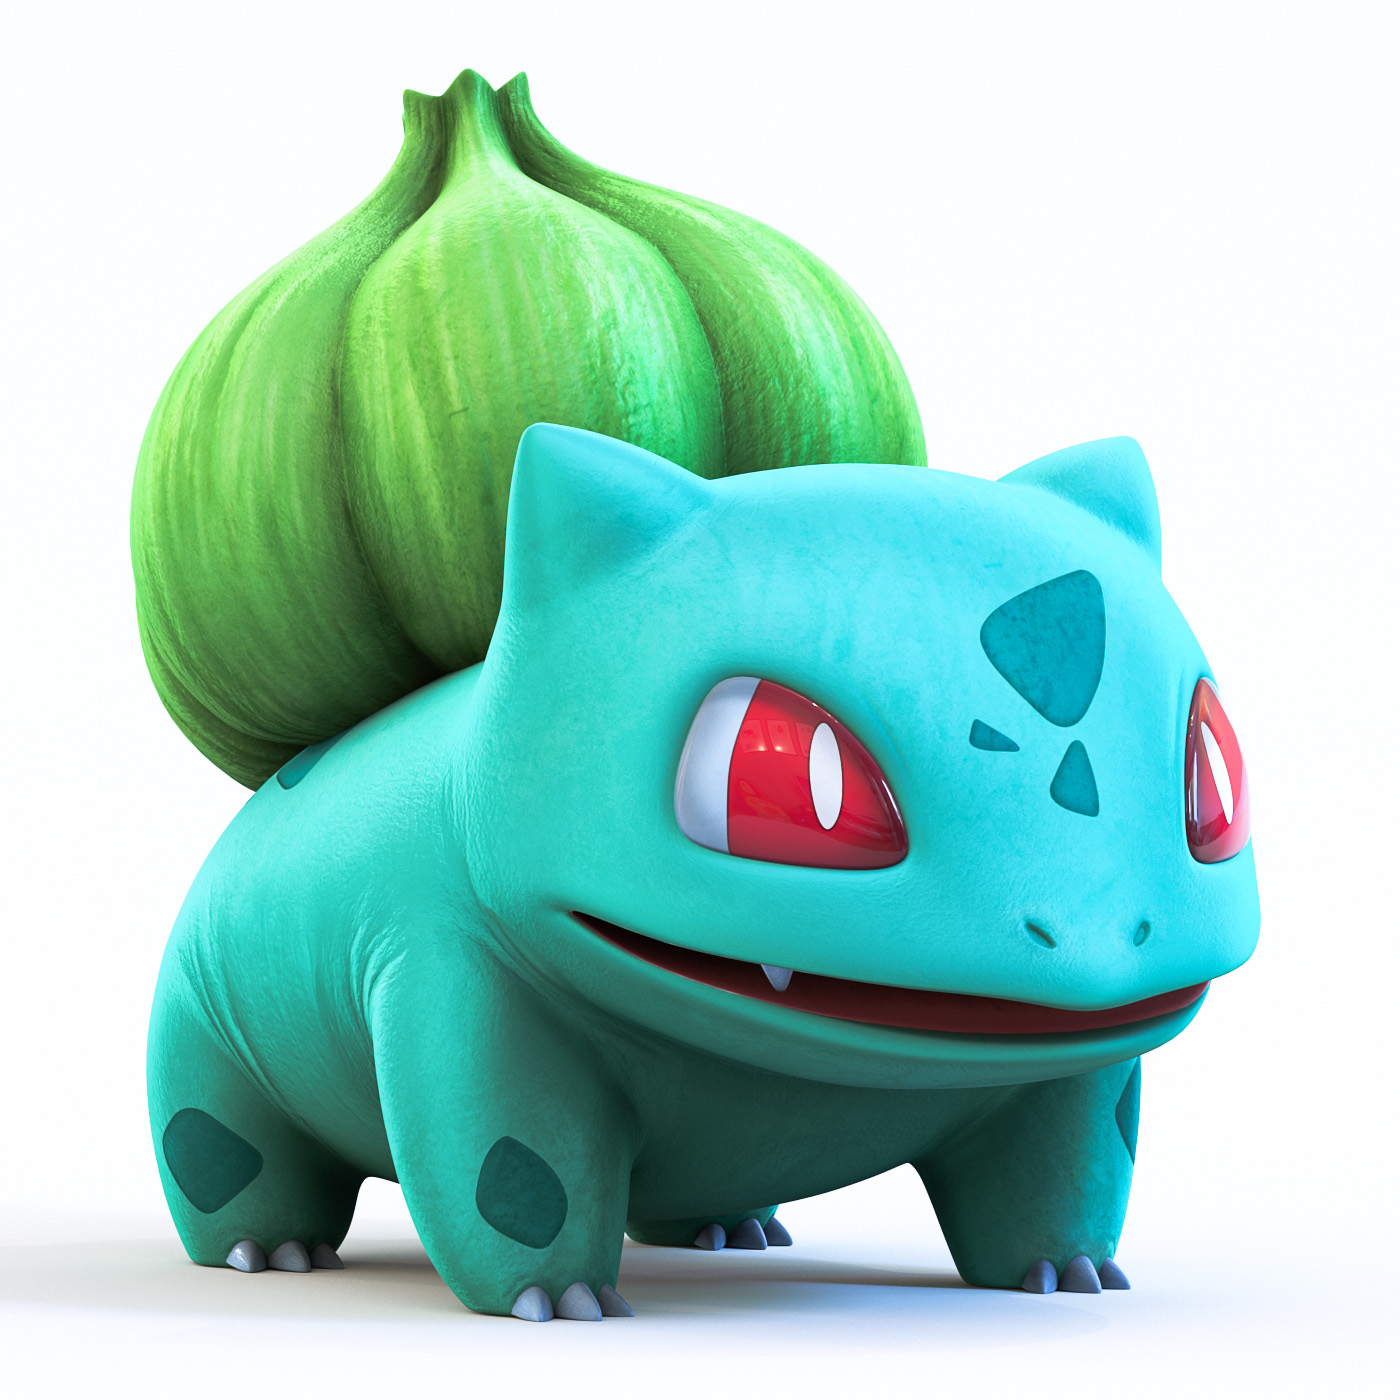 Bulbasaur by doubleagent2005